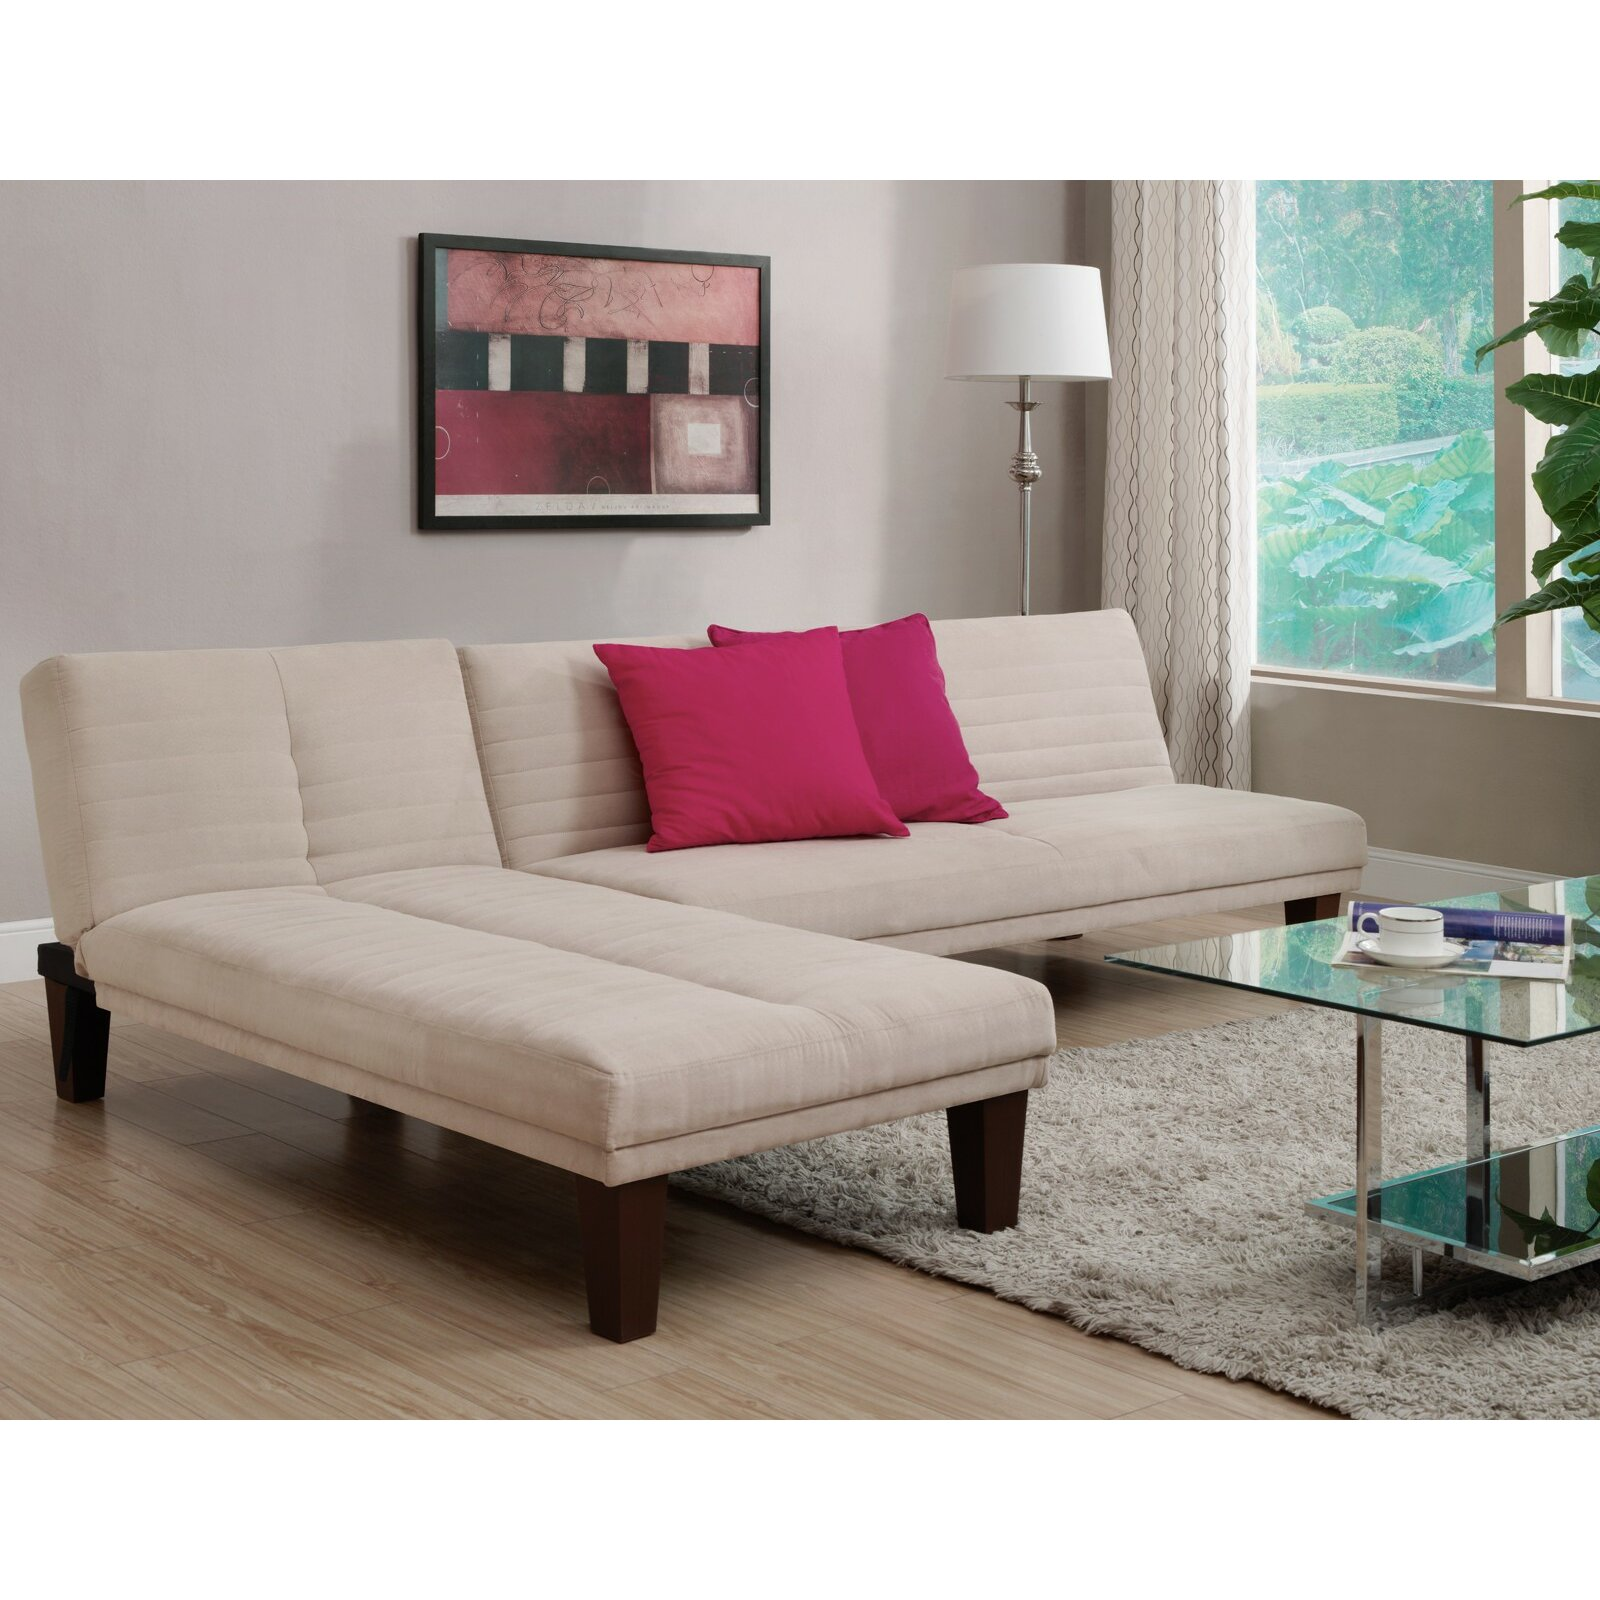 Zipcode design bianca chaise lounge reviews wayfair for Chaises design colorees